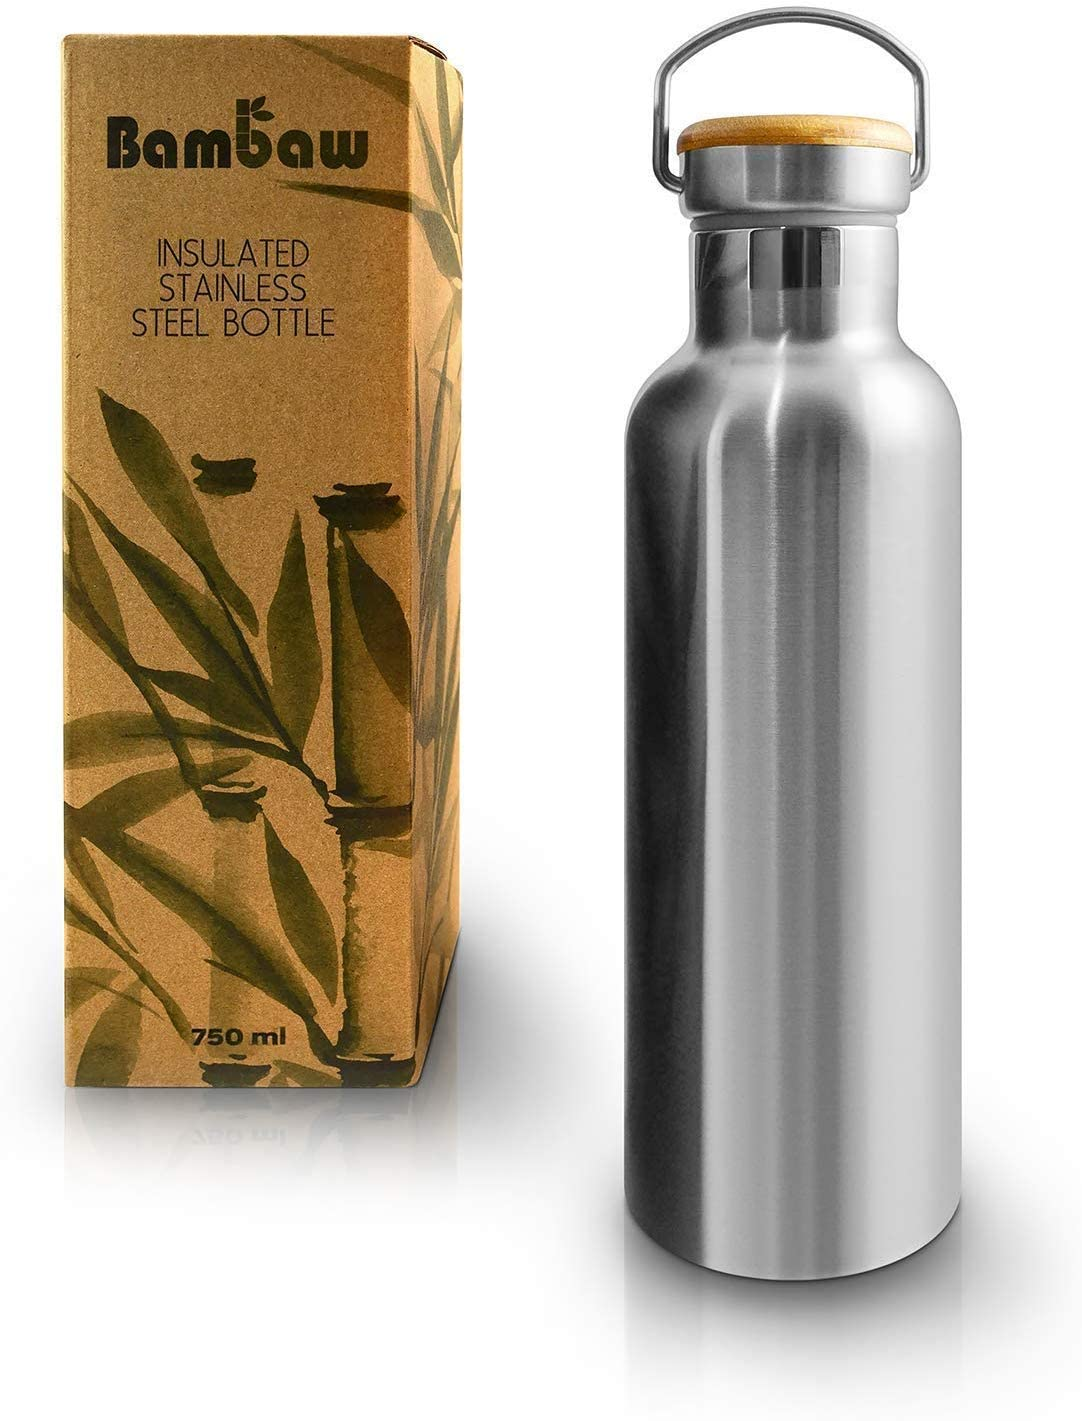 Bambaw Water Bottle | Stainless Steel Water Bottle | Eco Friendly Reusable Bottle | Leakproof and Sustainable Metal Water Bottle